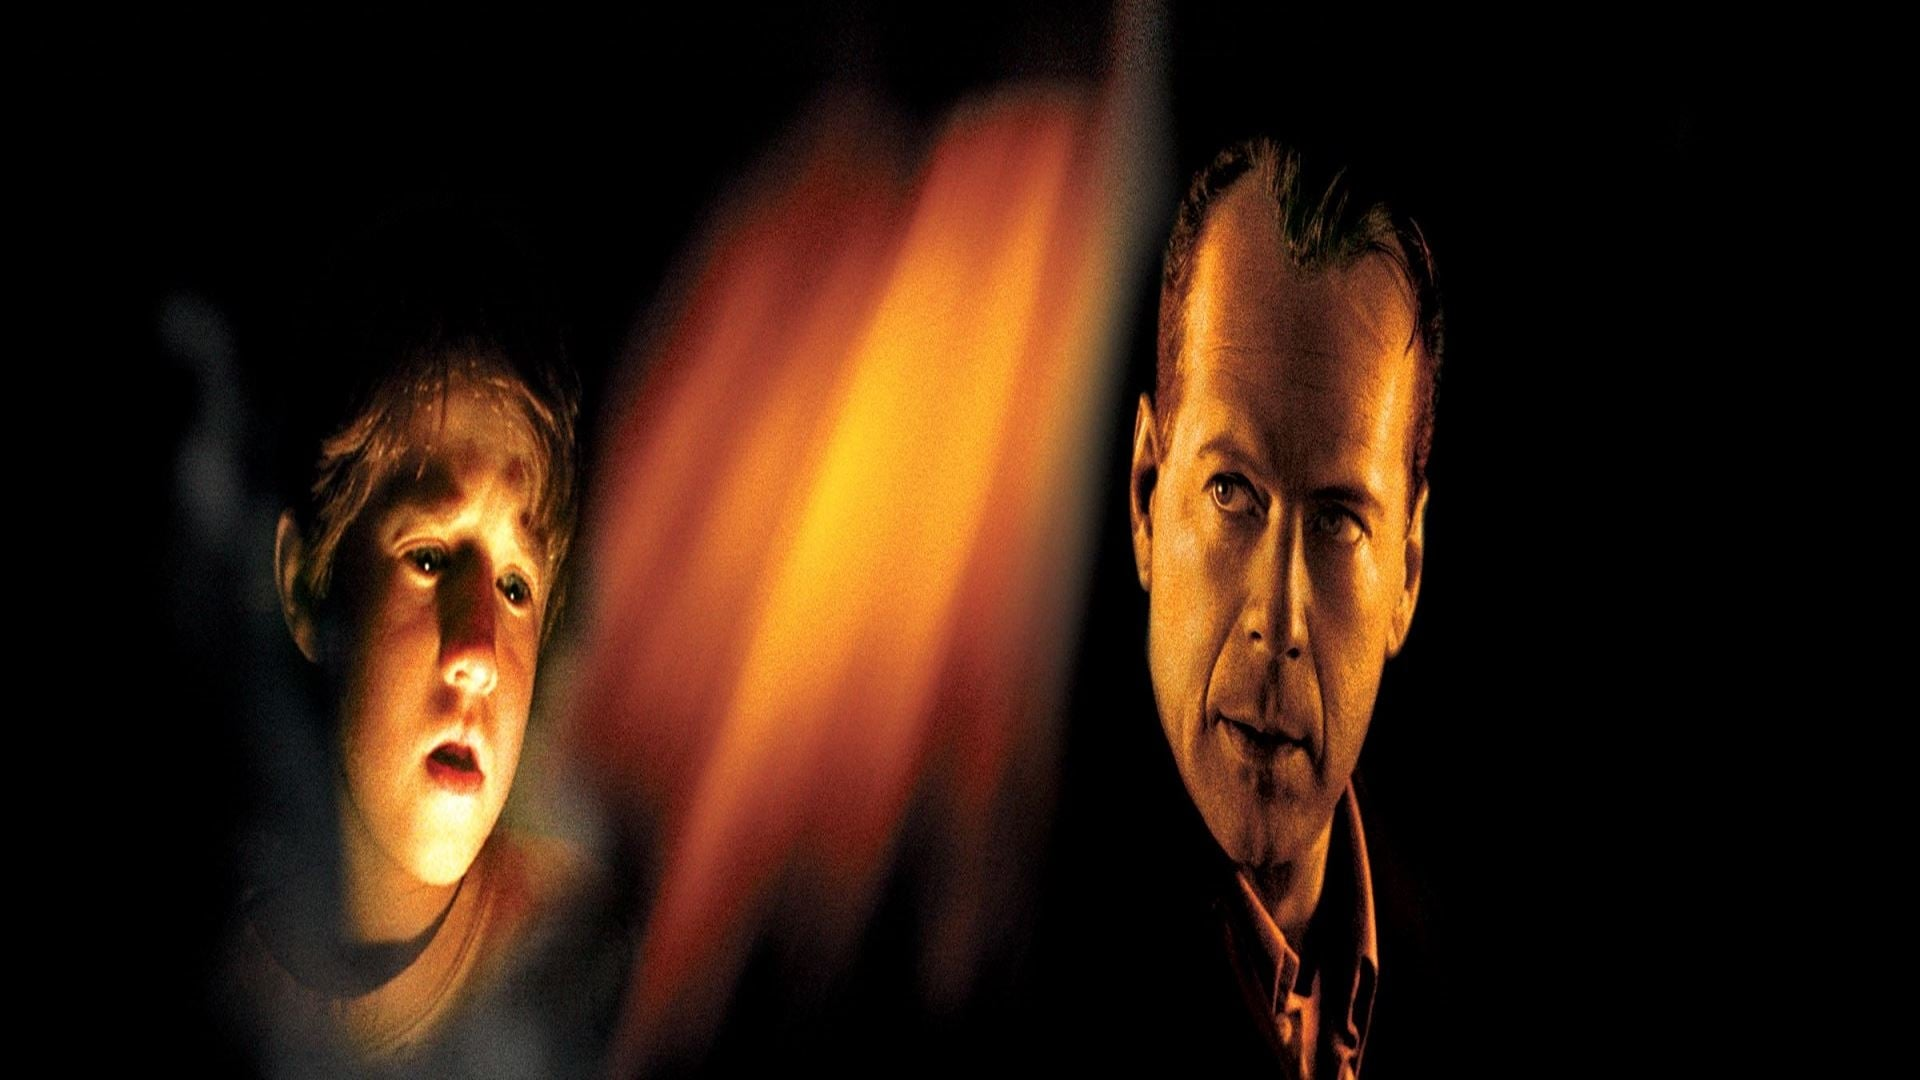 watch movie the sixth sense online free